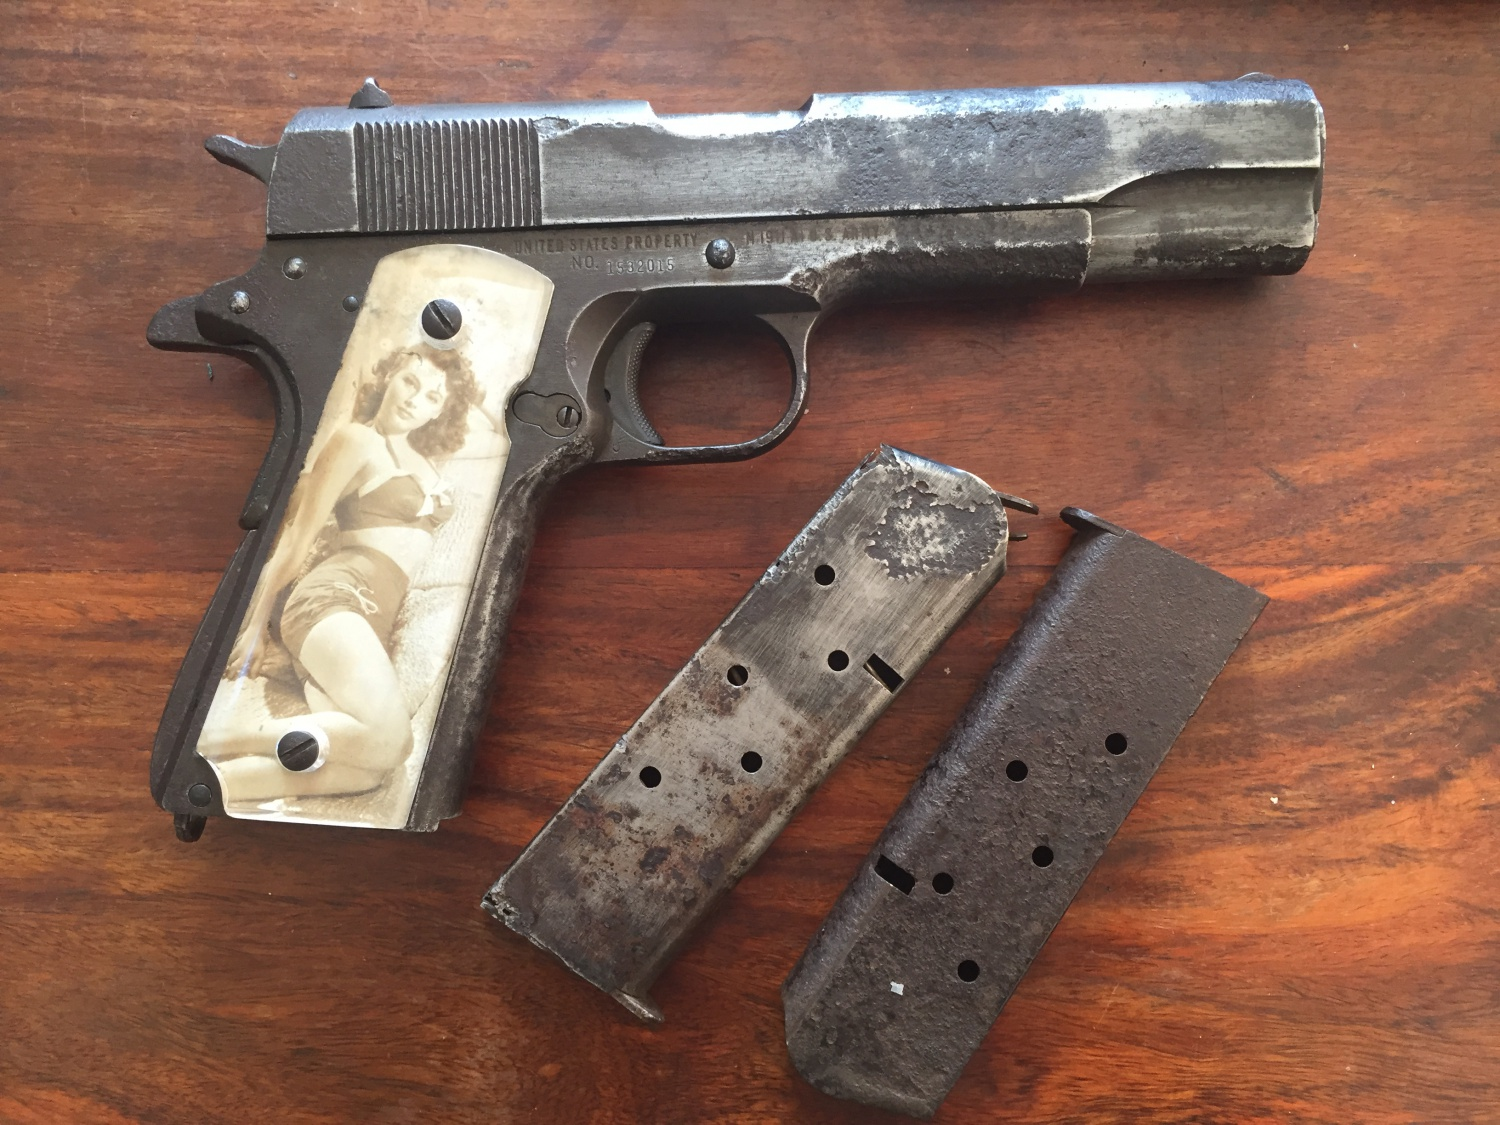 Potd World War Ii 1911 Military Pistol From A Crashed